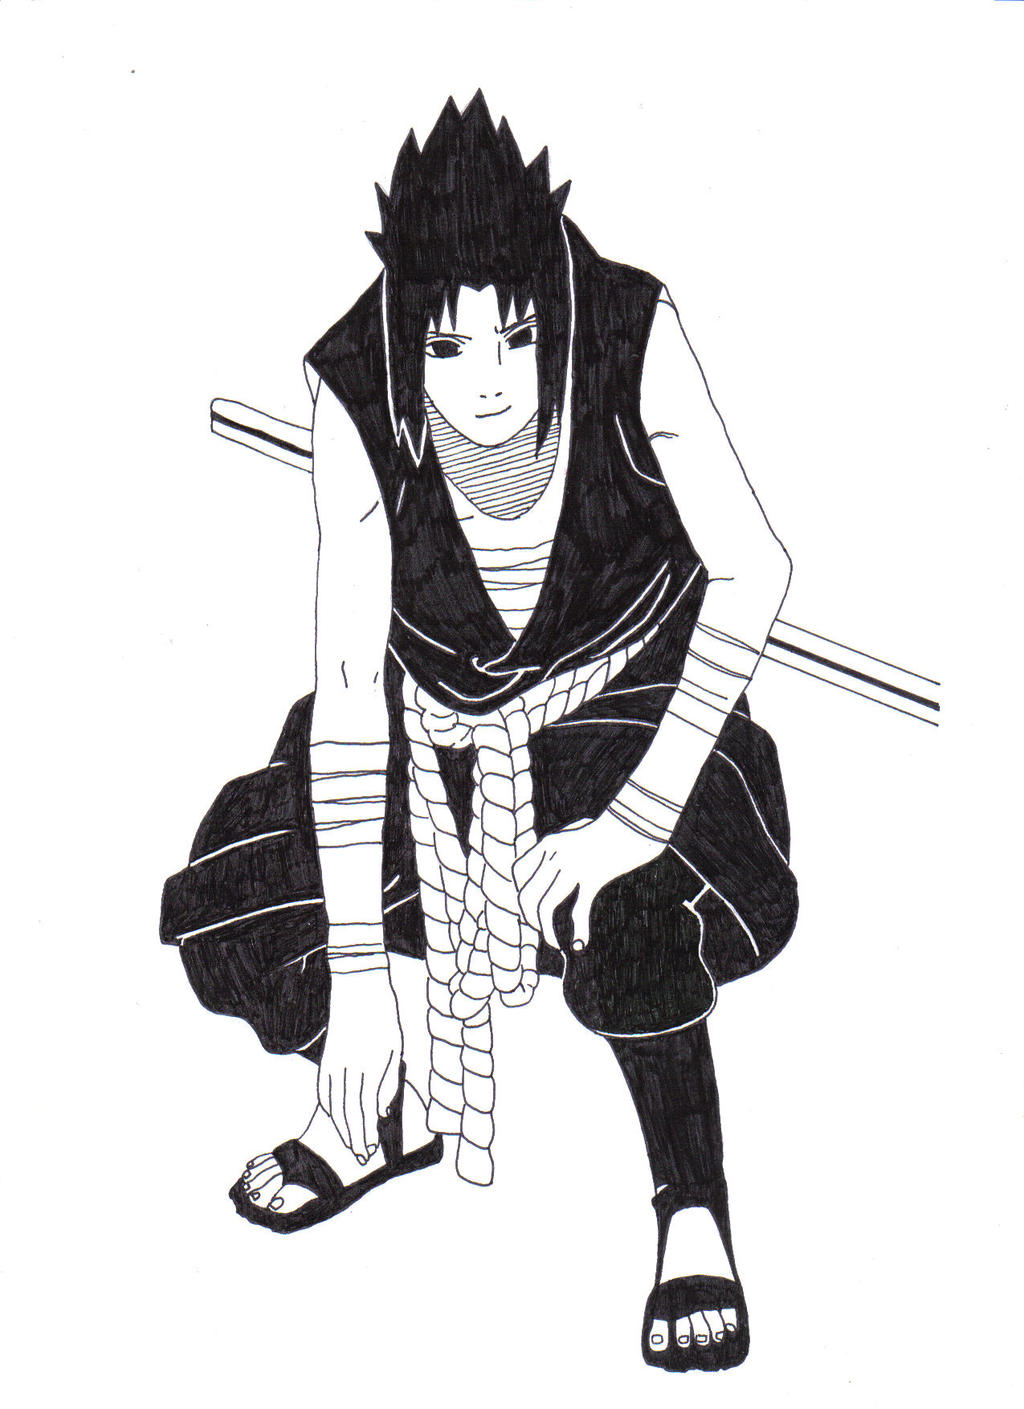 Sasuke Uchiha (vs. Itachi Uchiha) by 1Hutmacher1 on DeviantArt